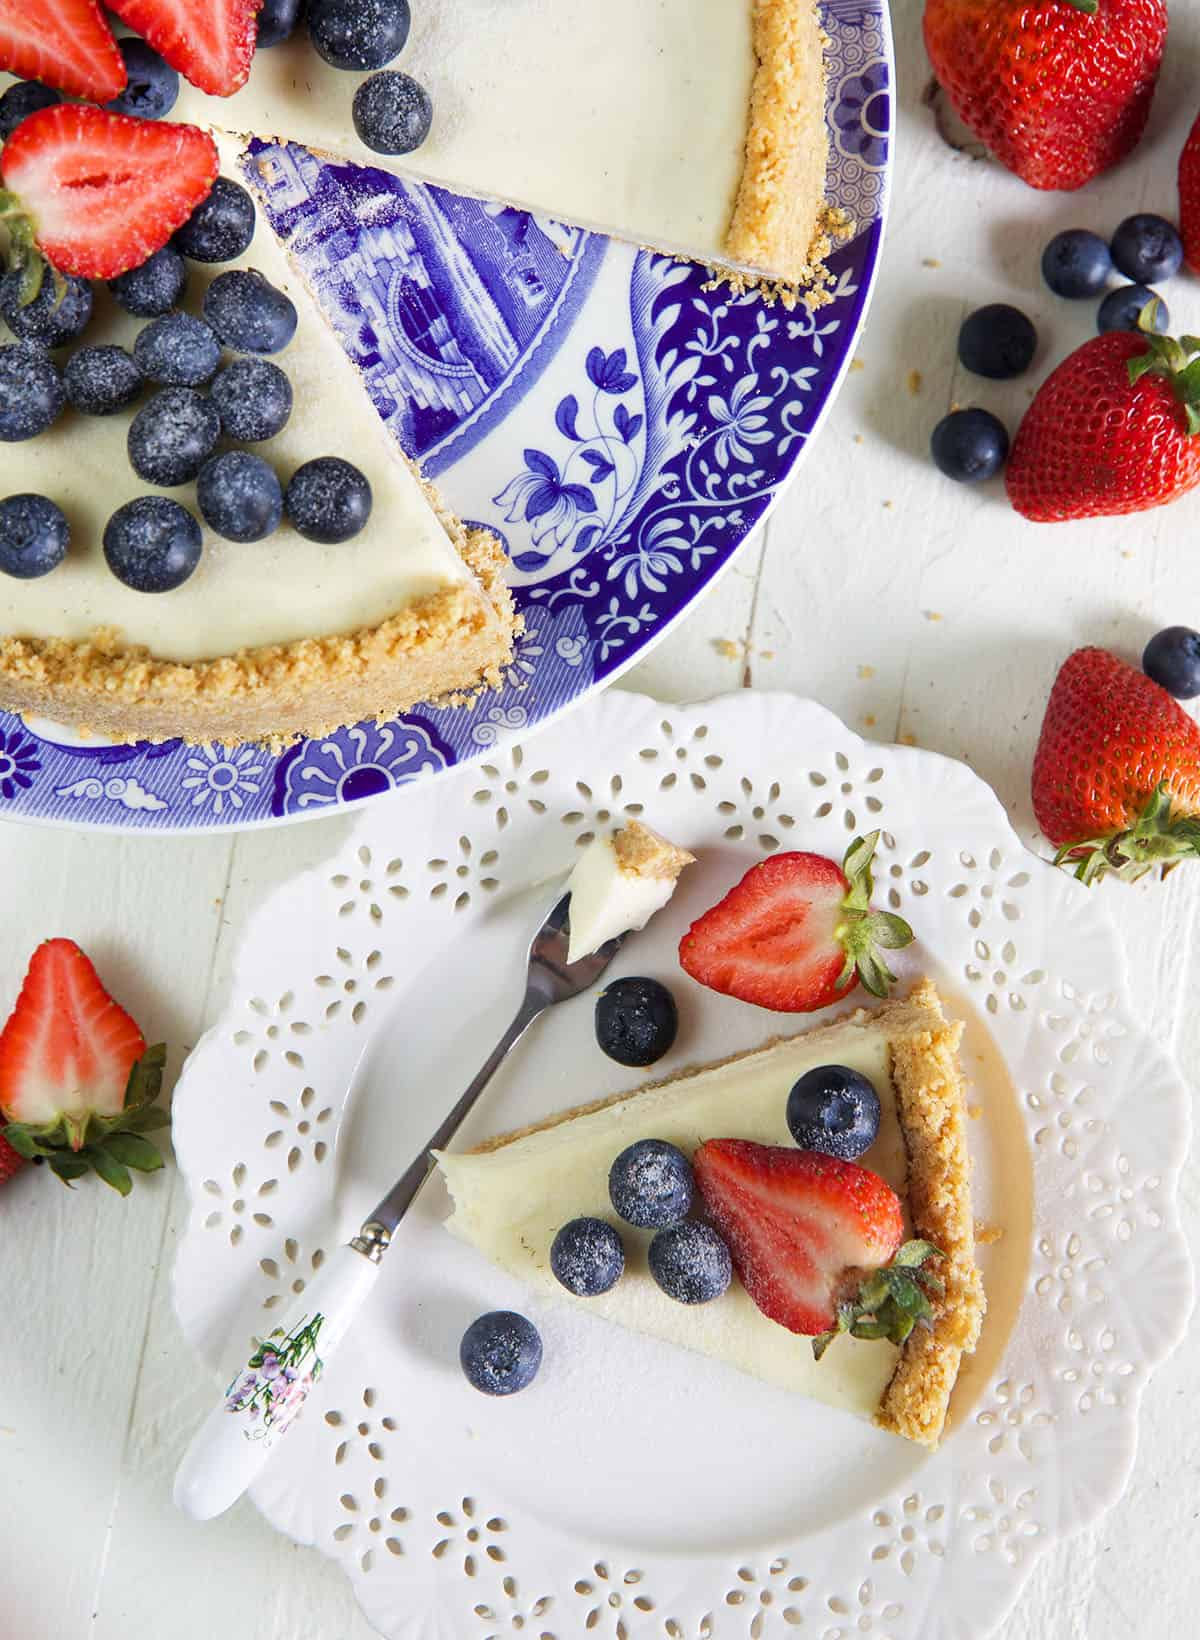 Slice of cheesecake on a white plate with a gold fork and berries on top.